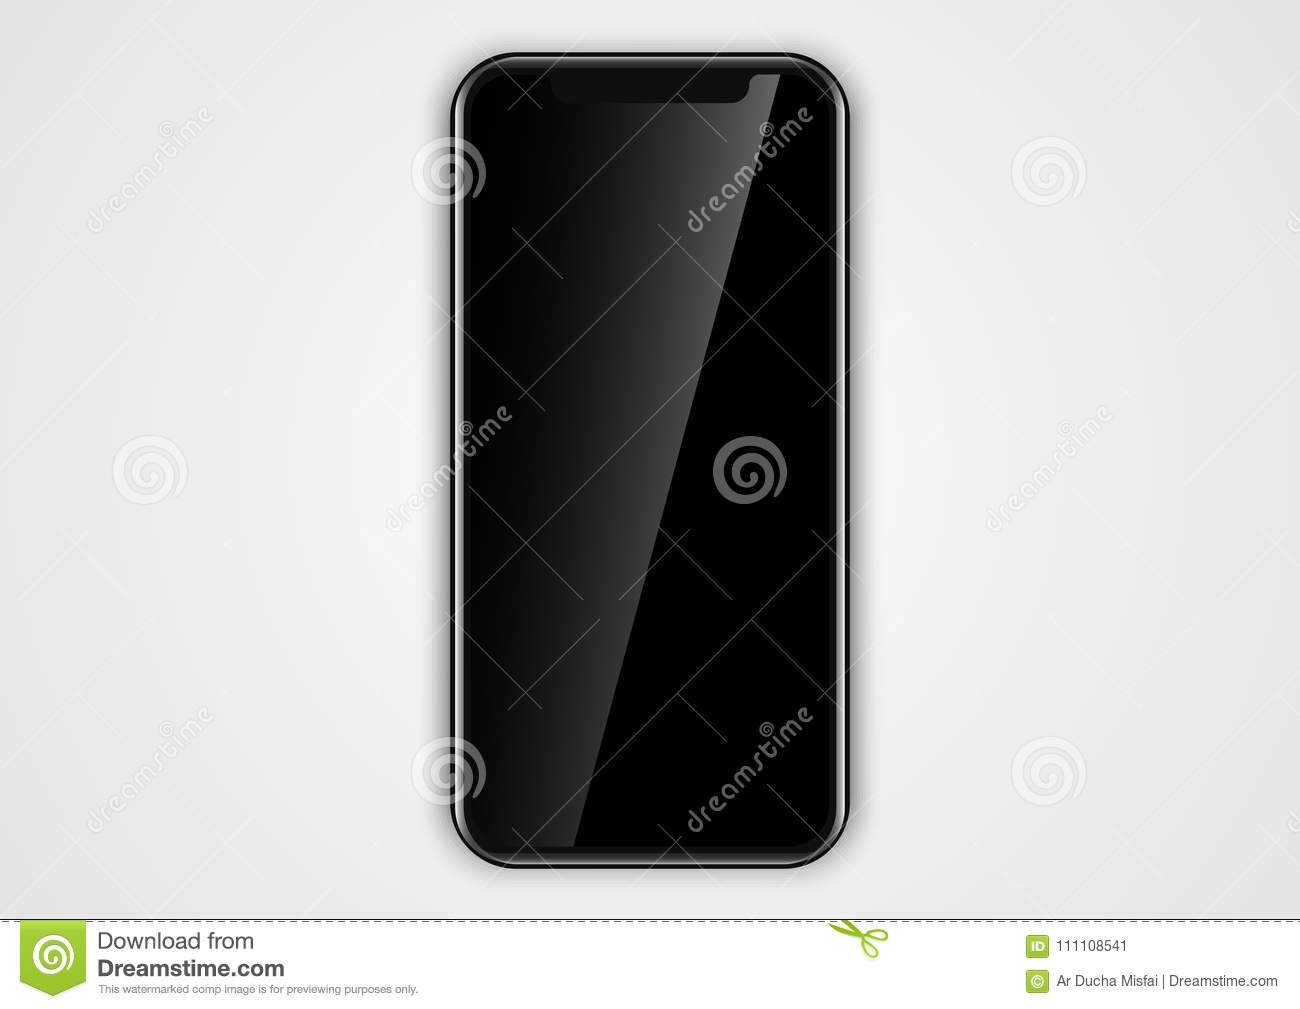 Blank Iphone Template | Blank Phone Frame Design For Template User Interface Stock Vector